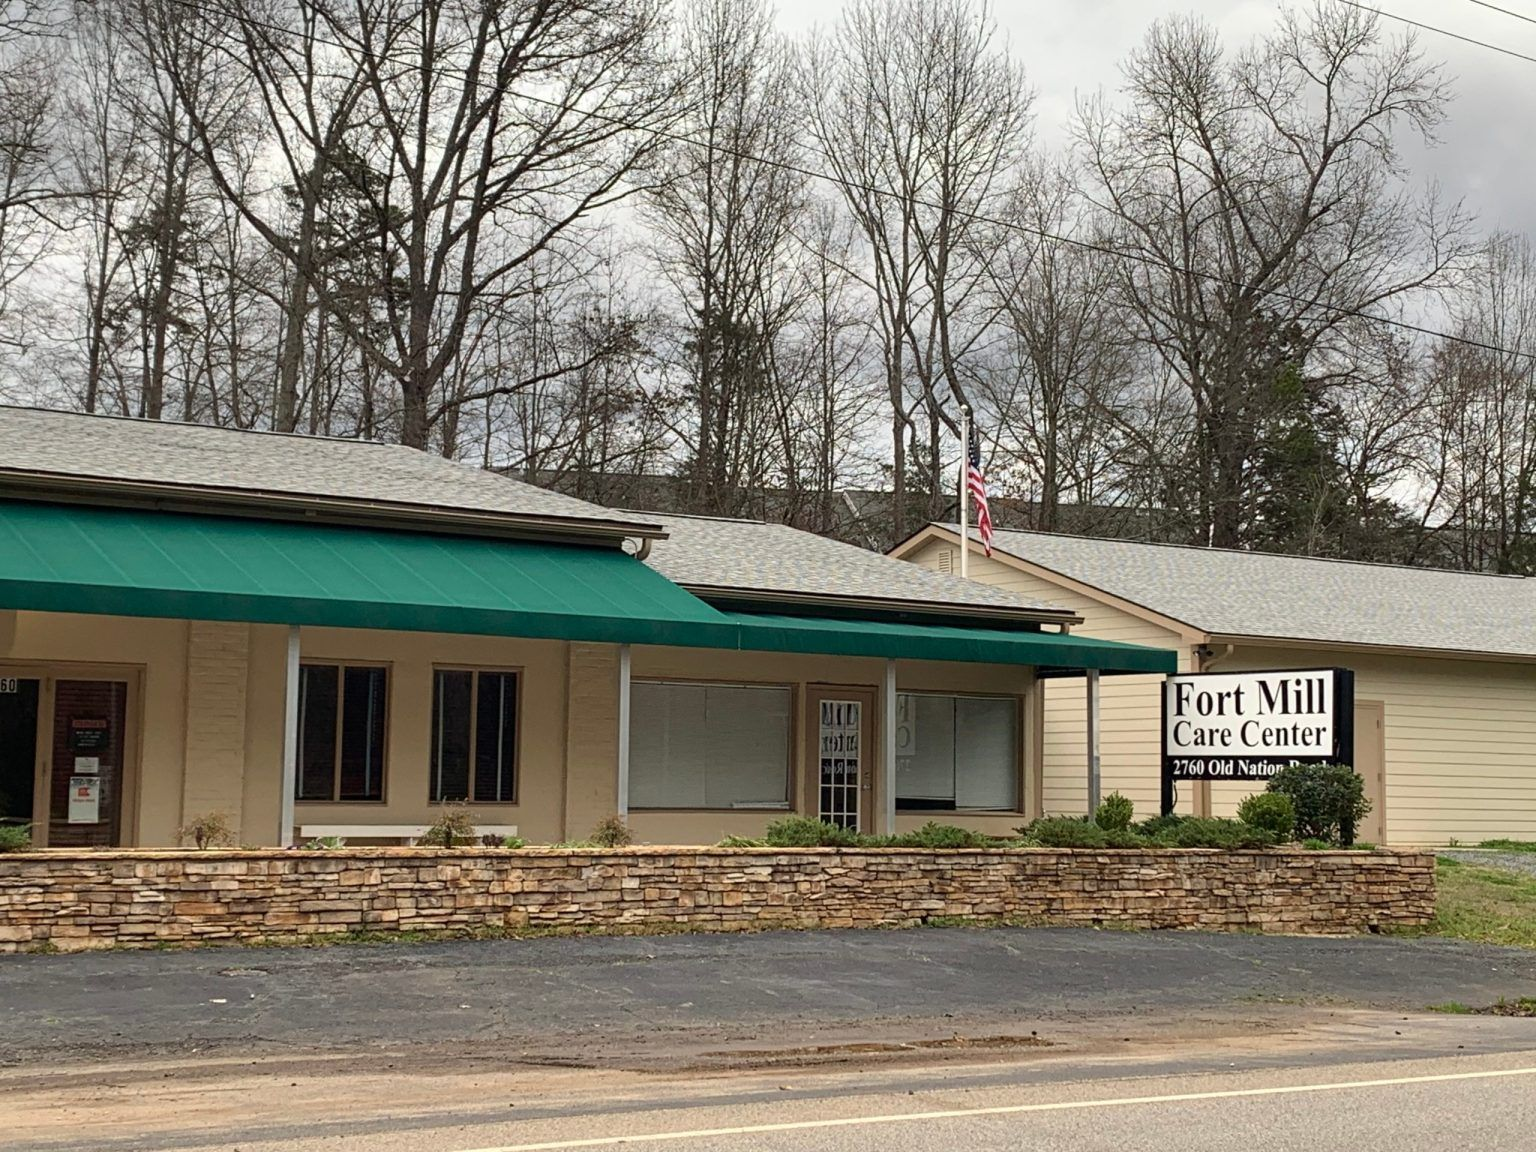 Fort Mill Care Center